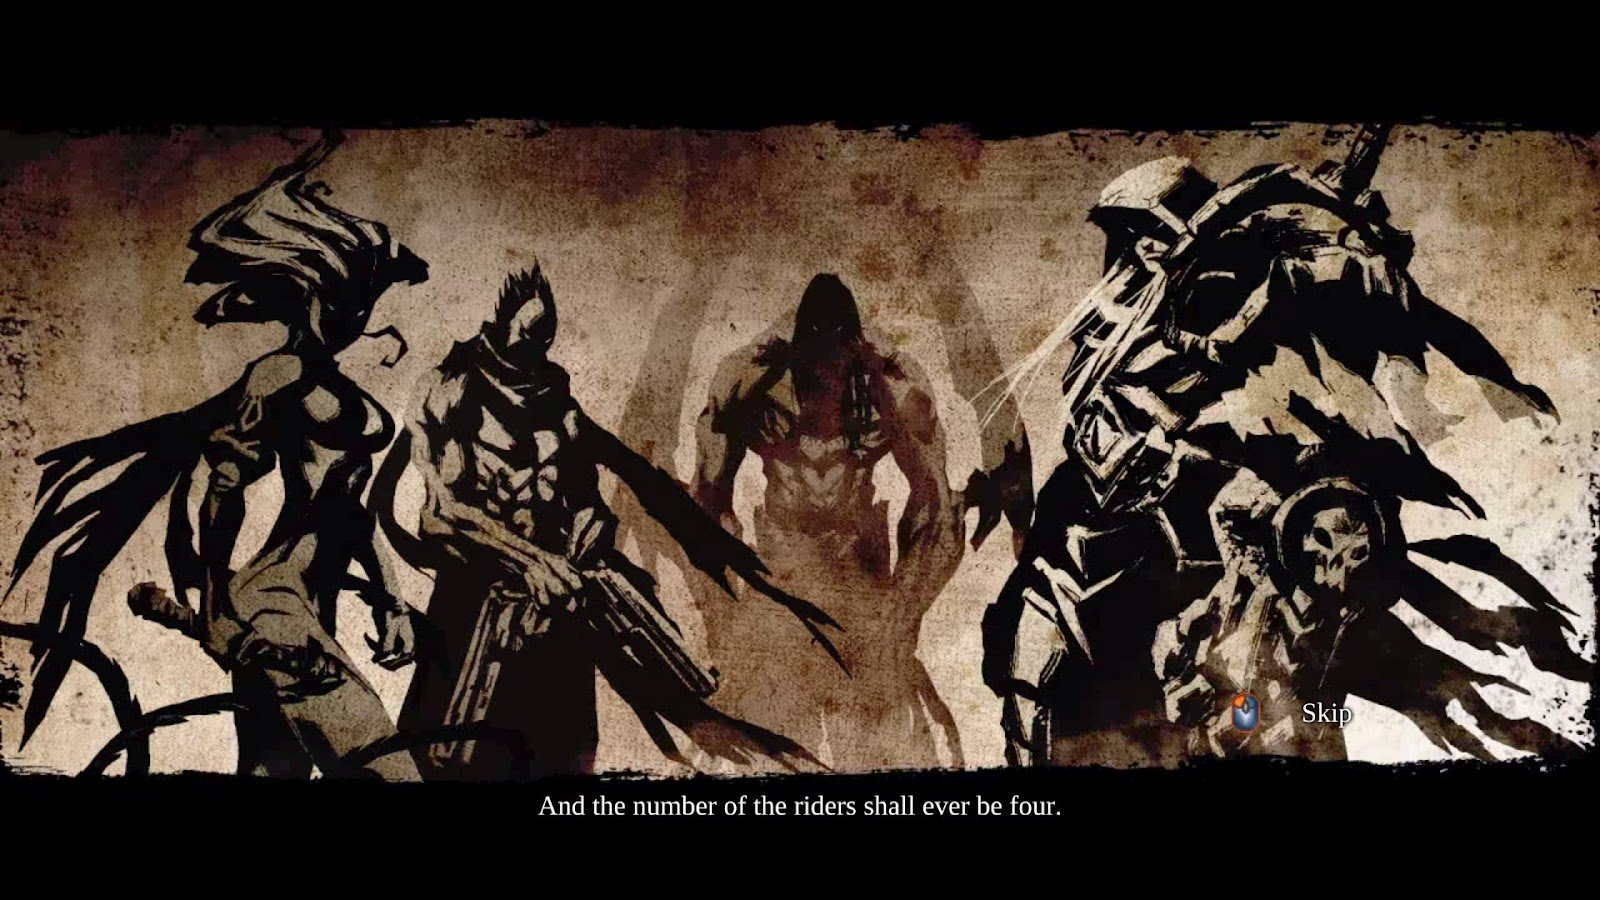 Four Horsemen Of The Apocalypse Wallpaper Darksiders Images Pictures 1600x900